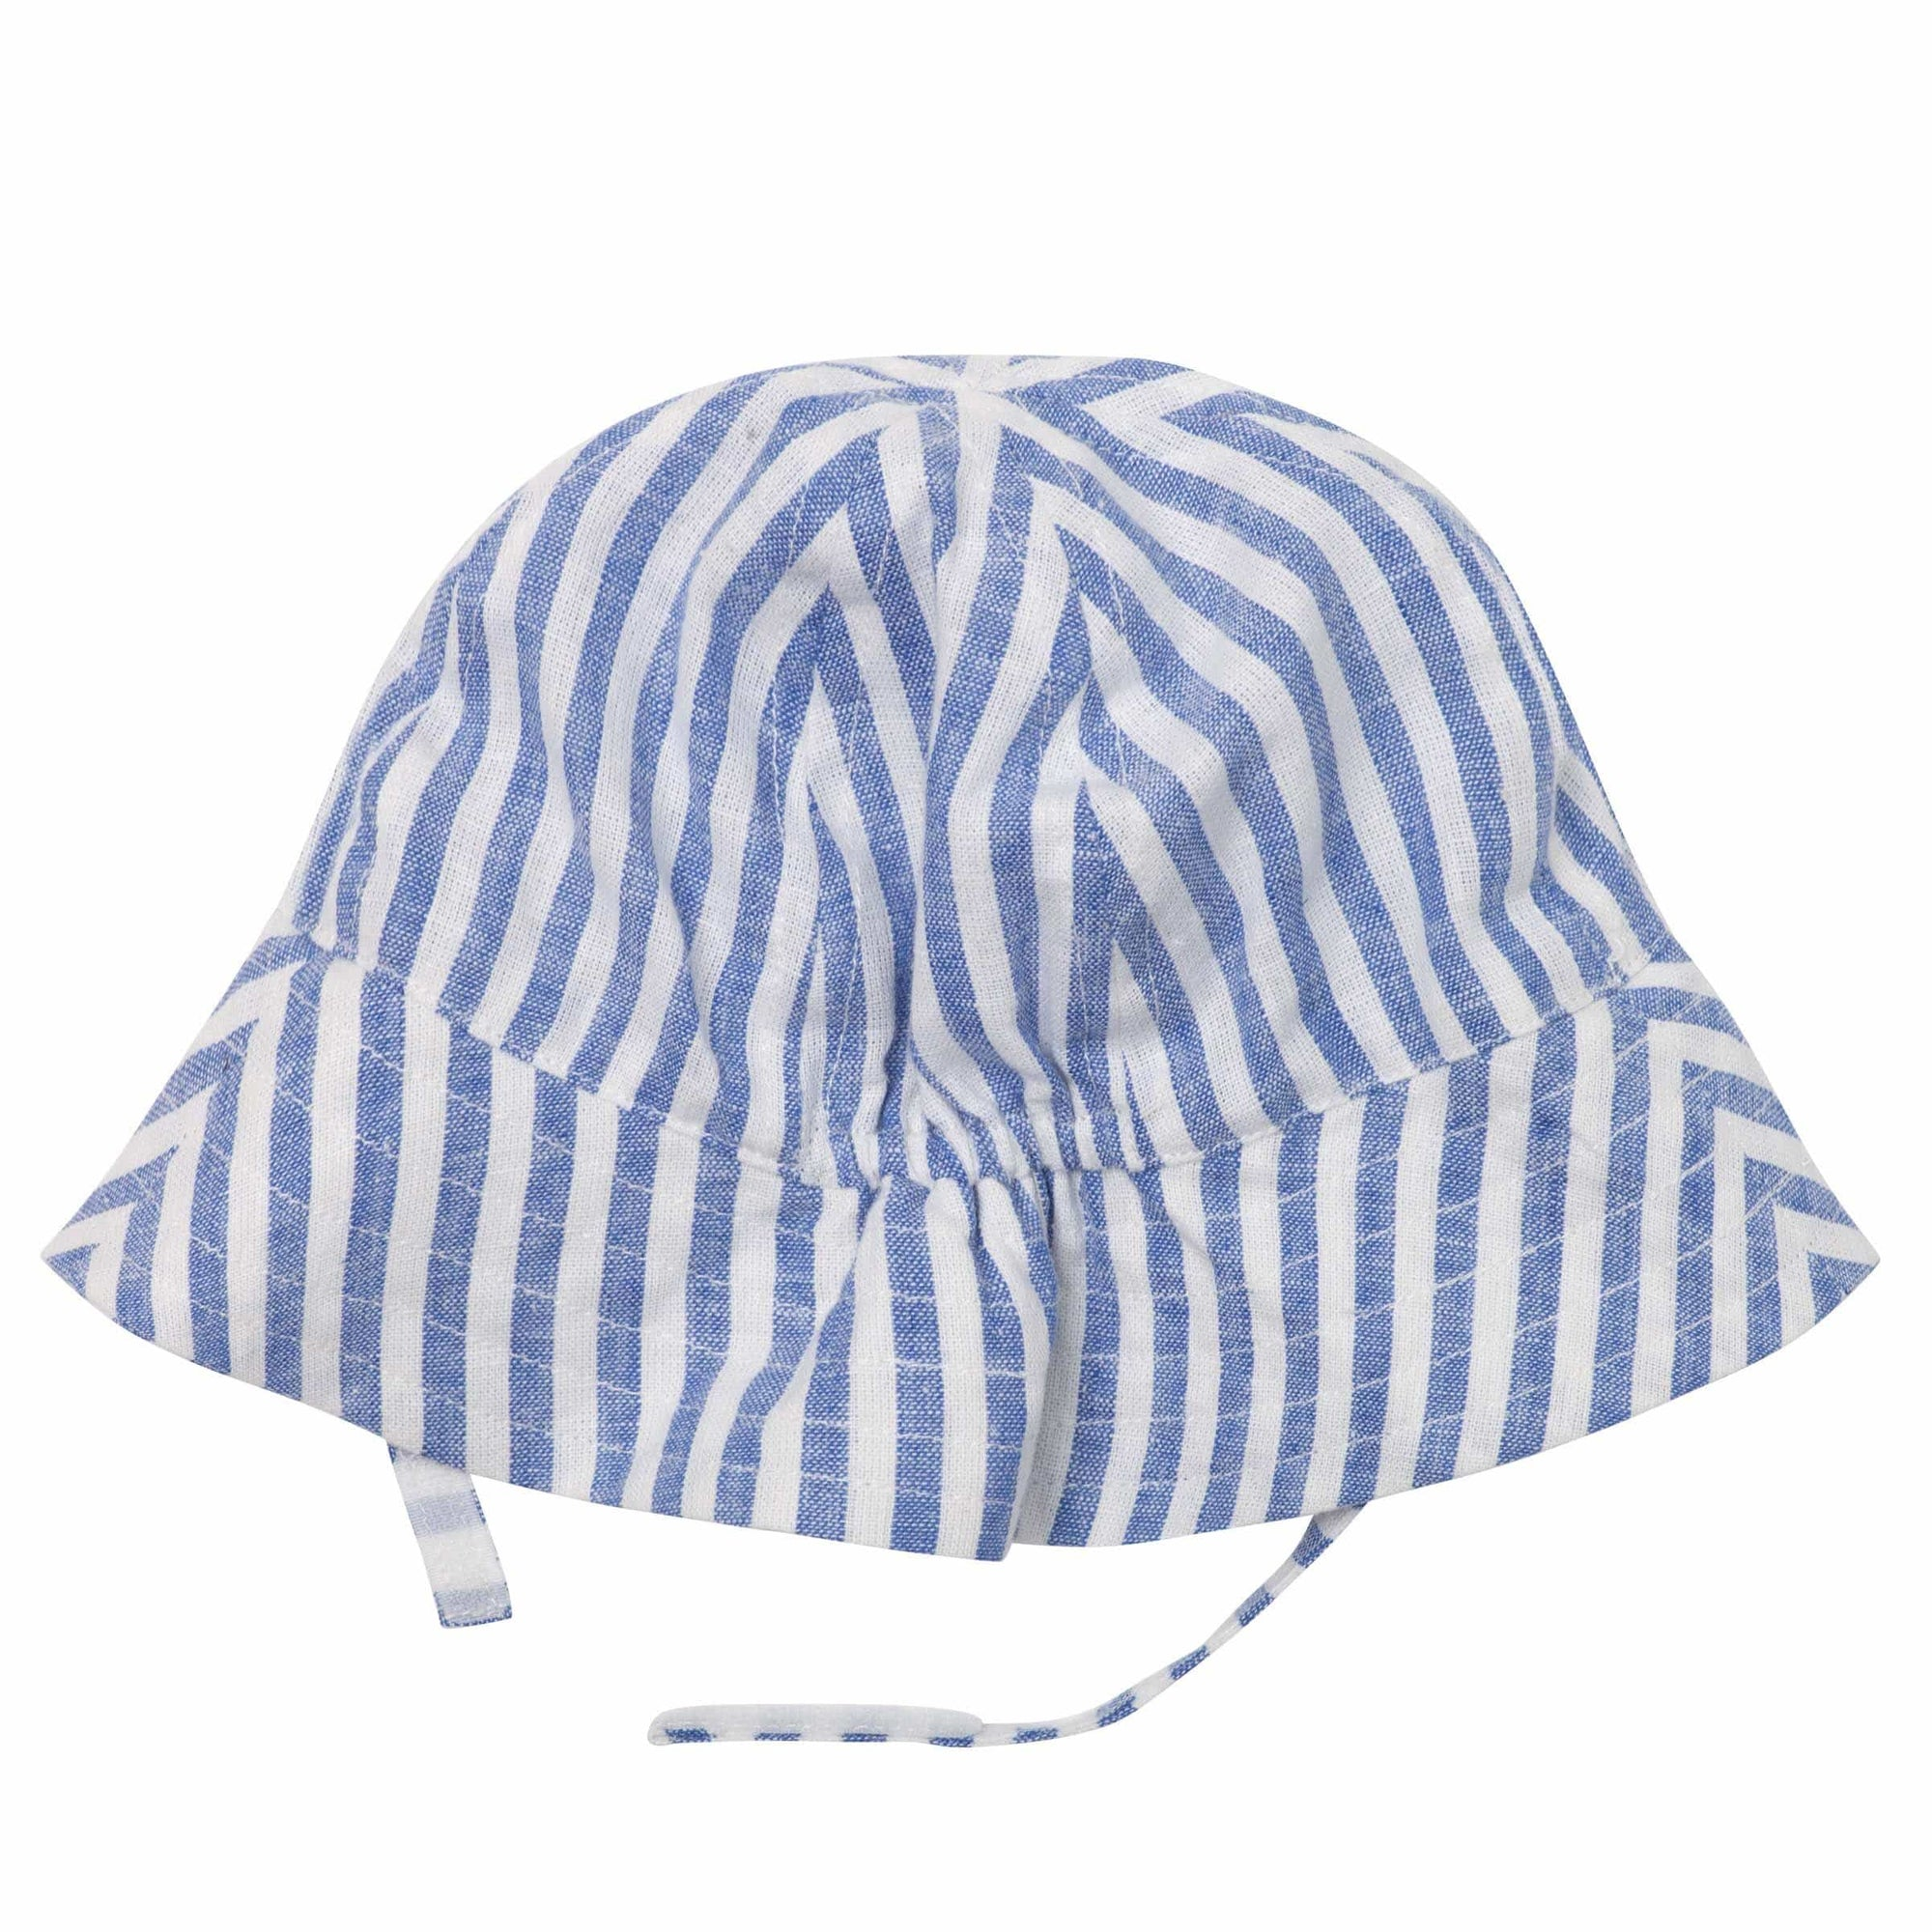 Designer Kidz Linen Bucket Hat - Seaside Stripe